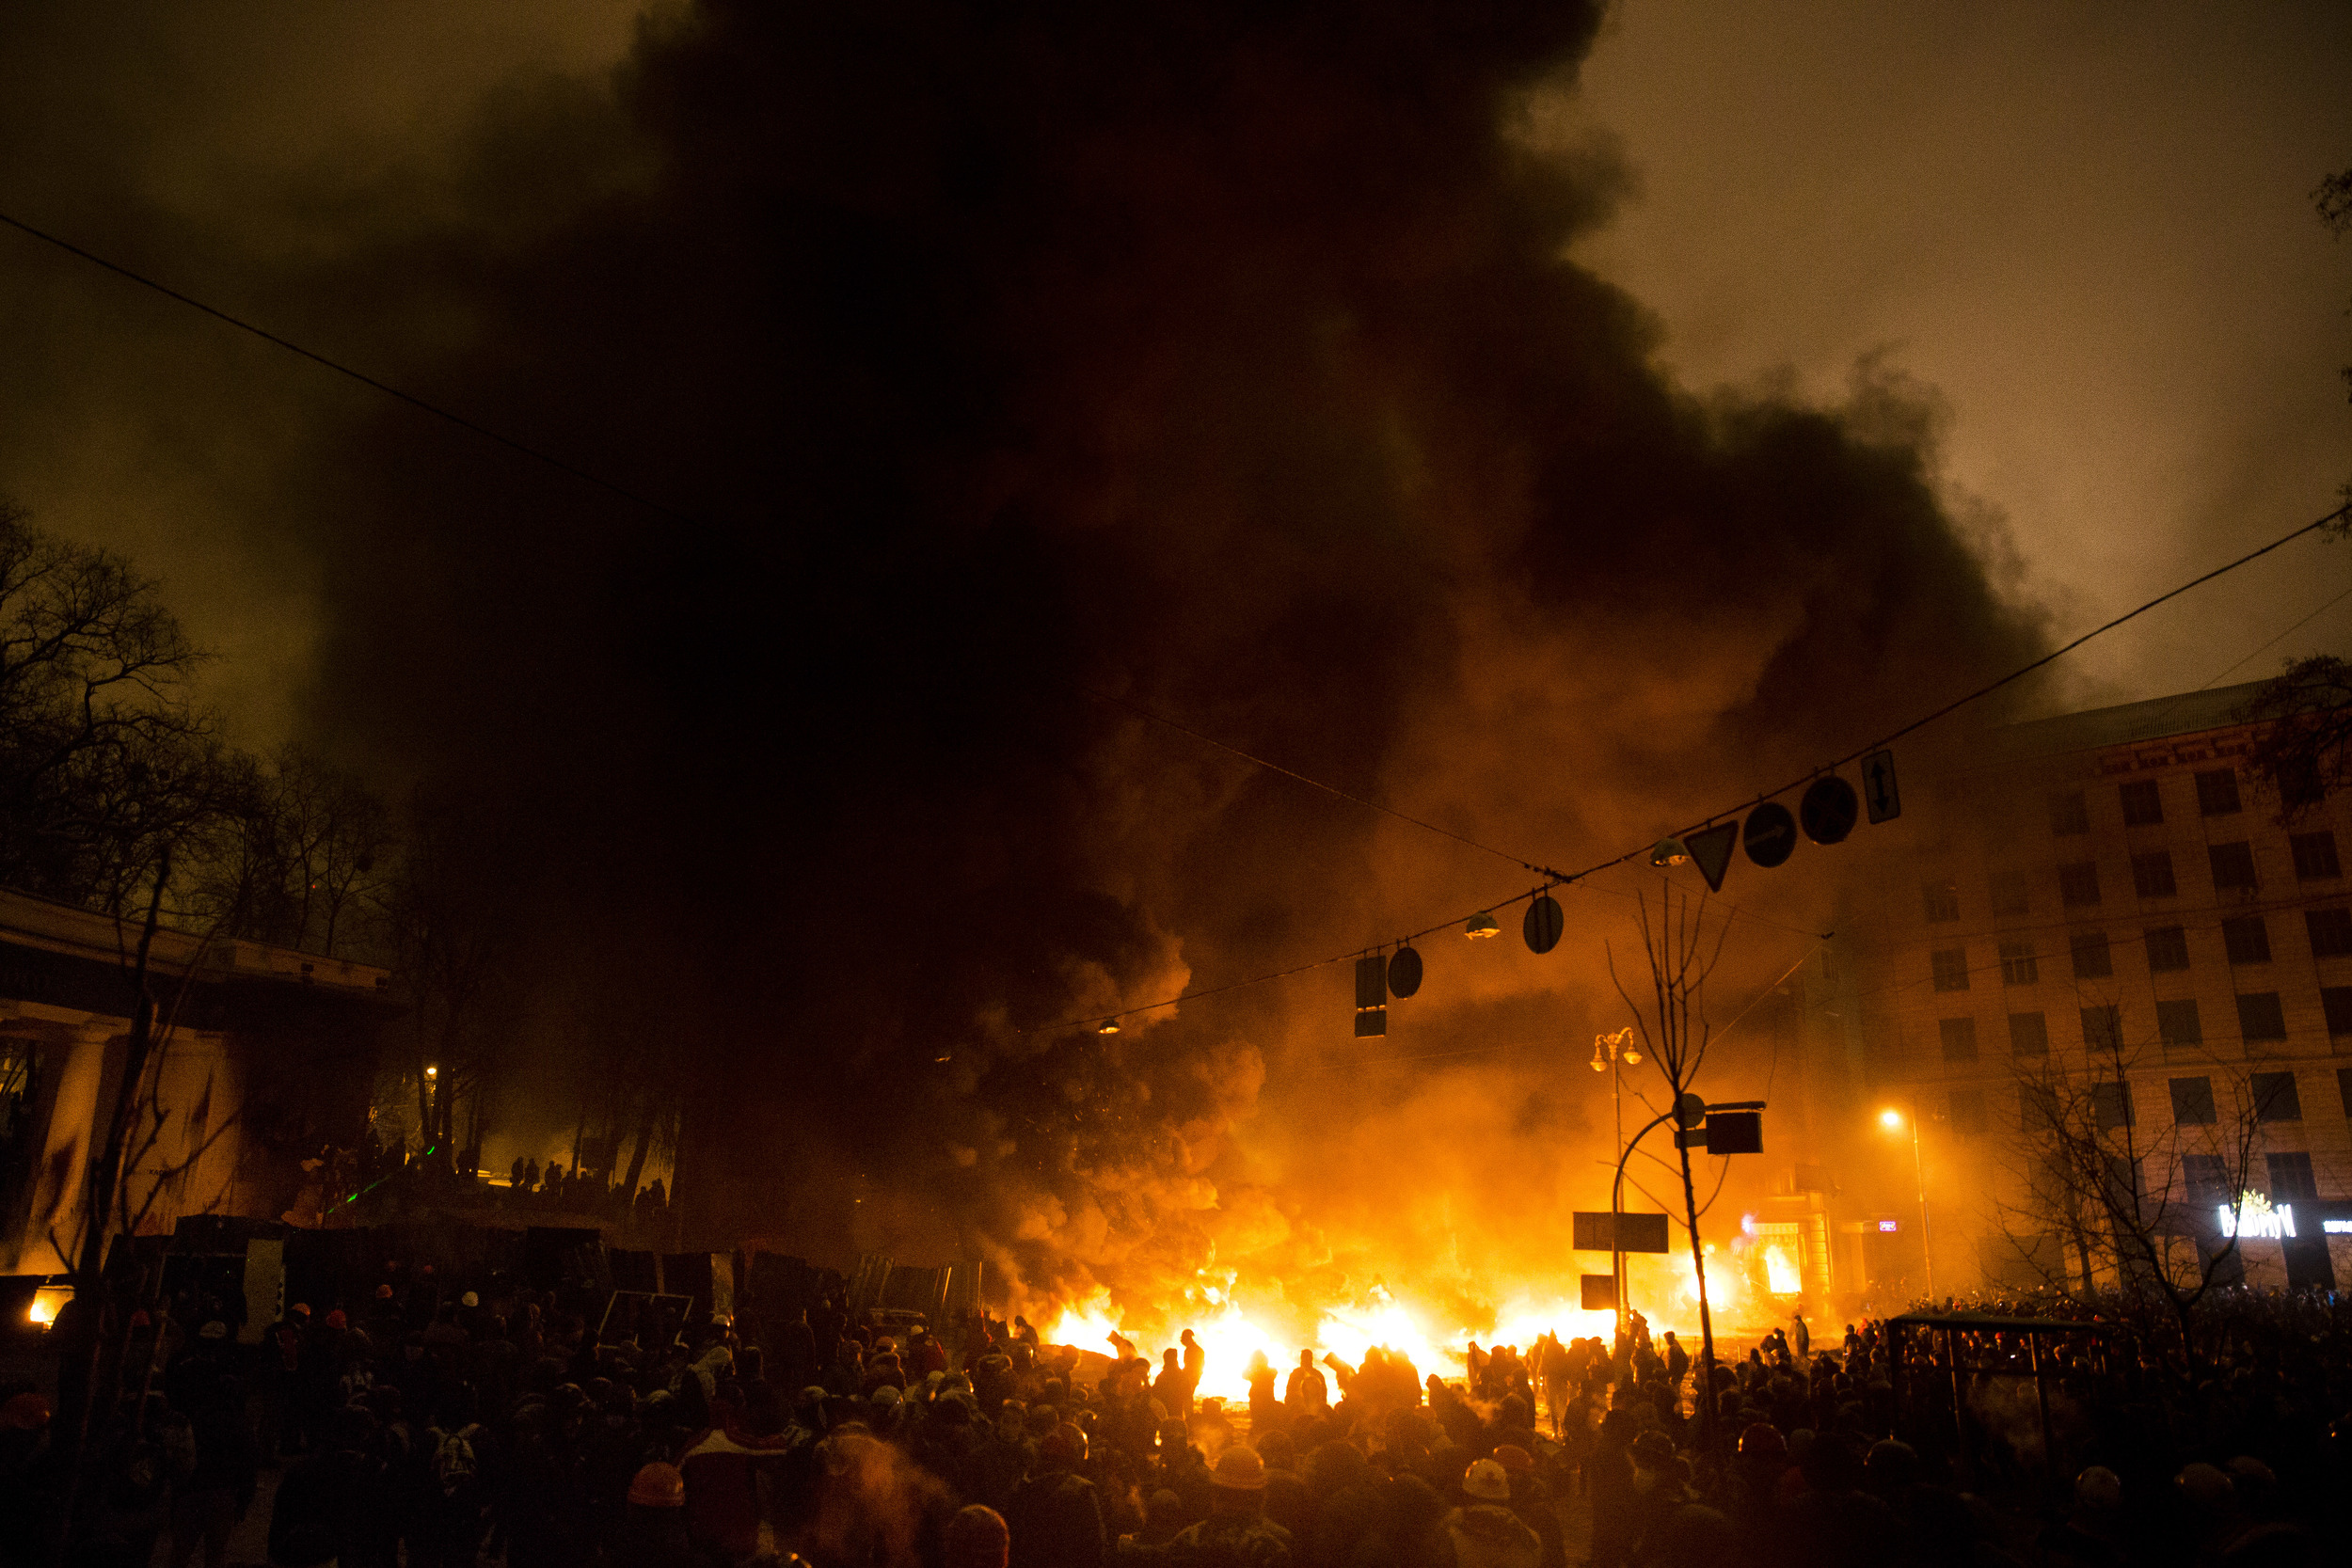 Protesters lit up the barricades on Hrushevskogo street in Kiev